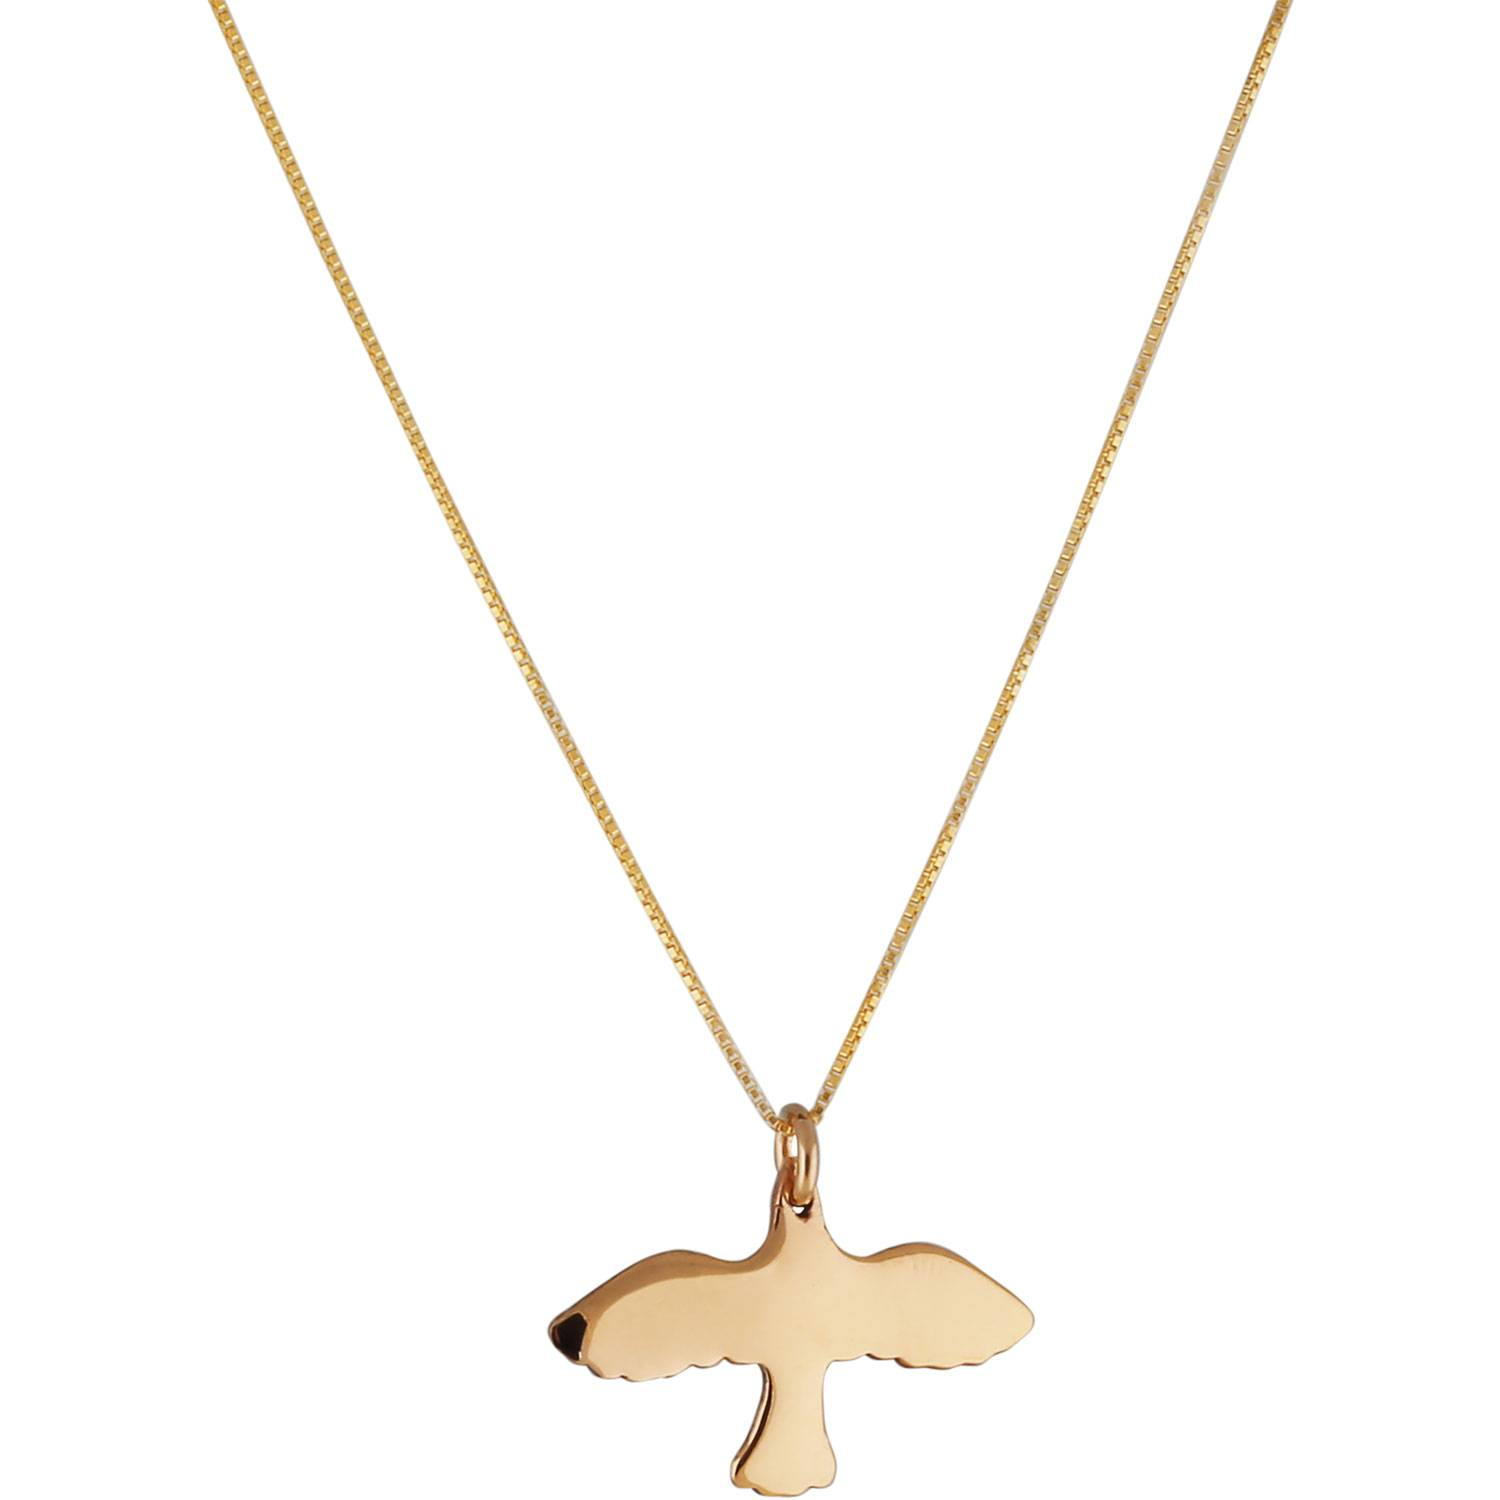 Emma Israelsson Dove Small Necklace, Gold